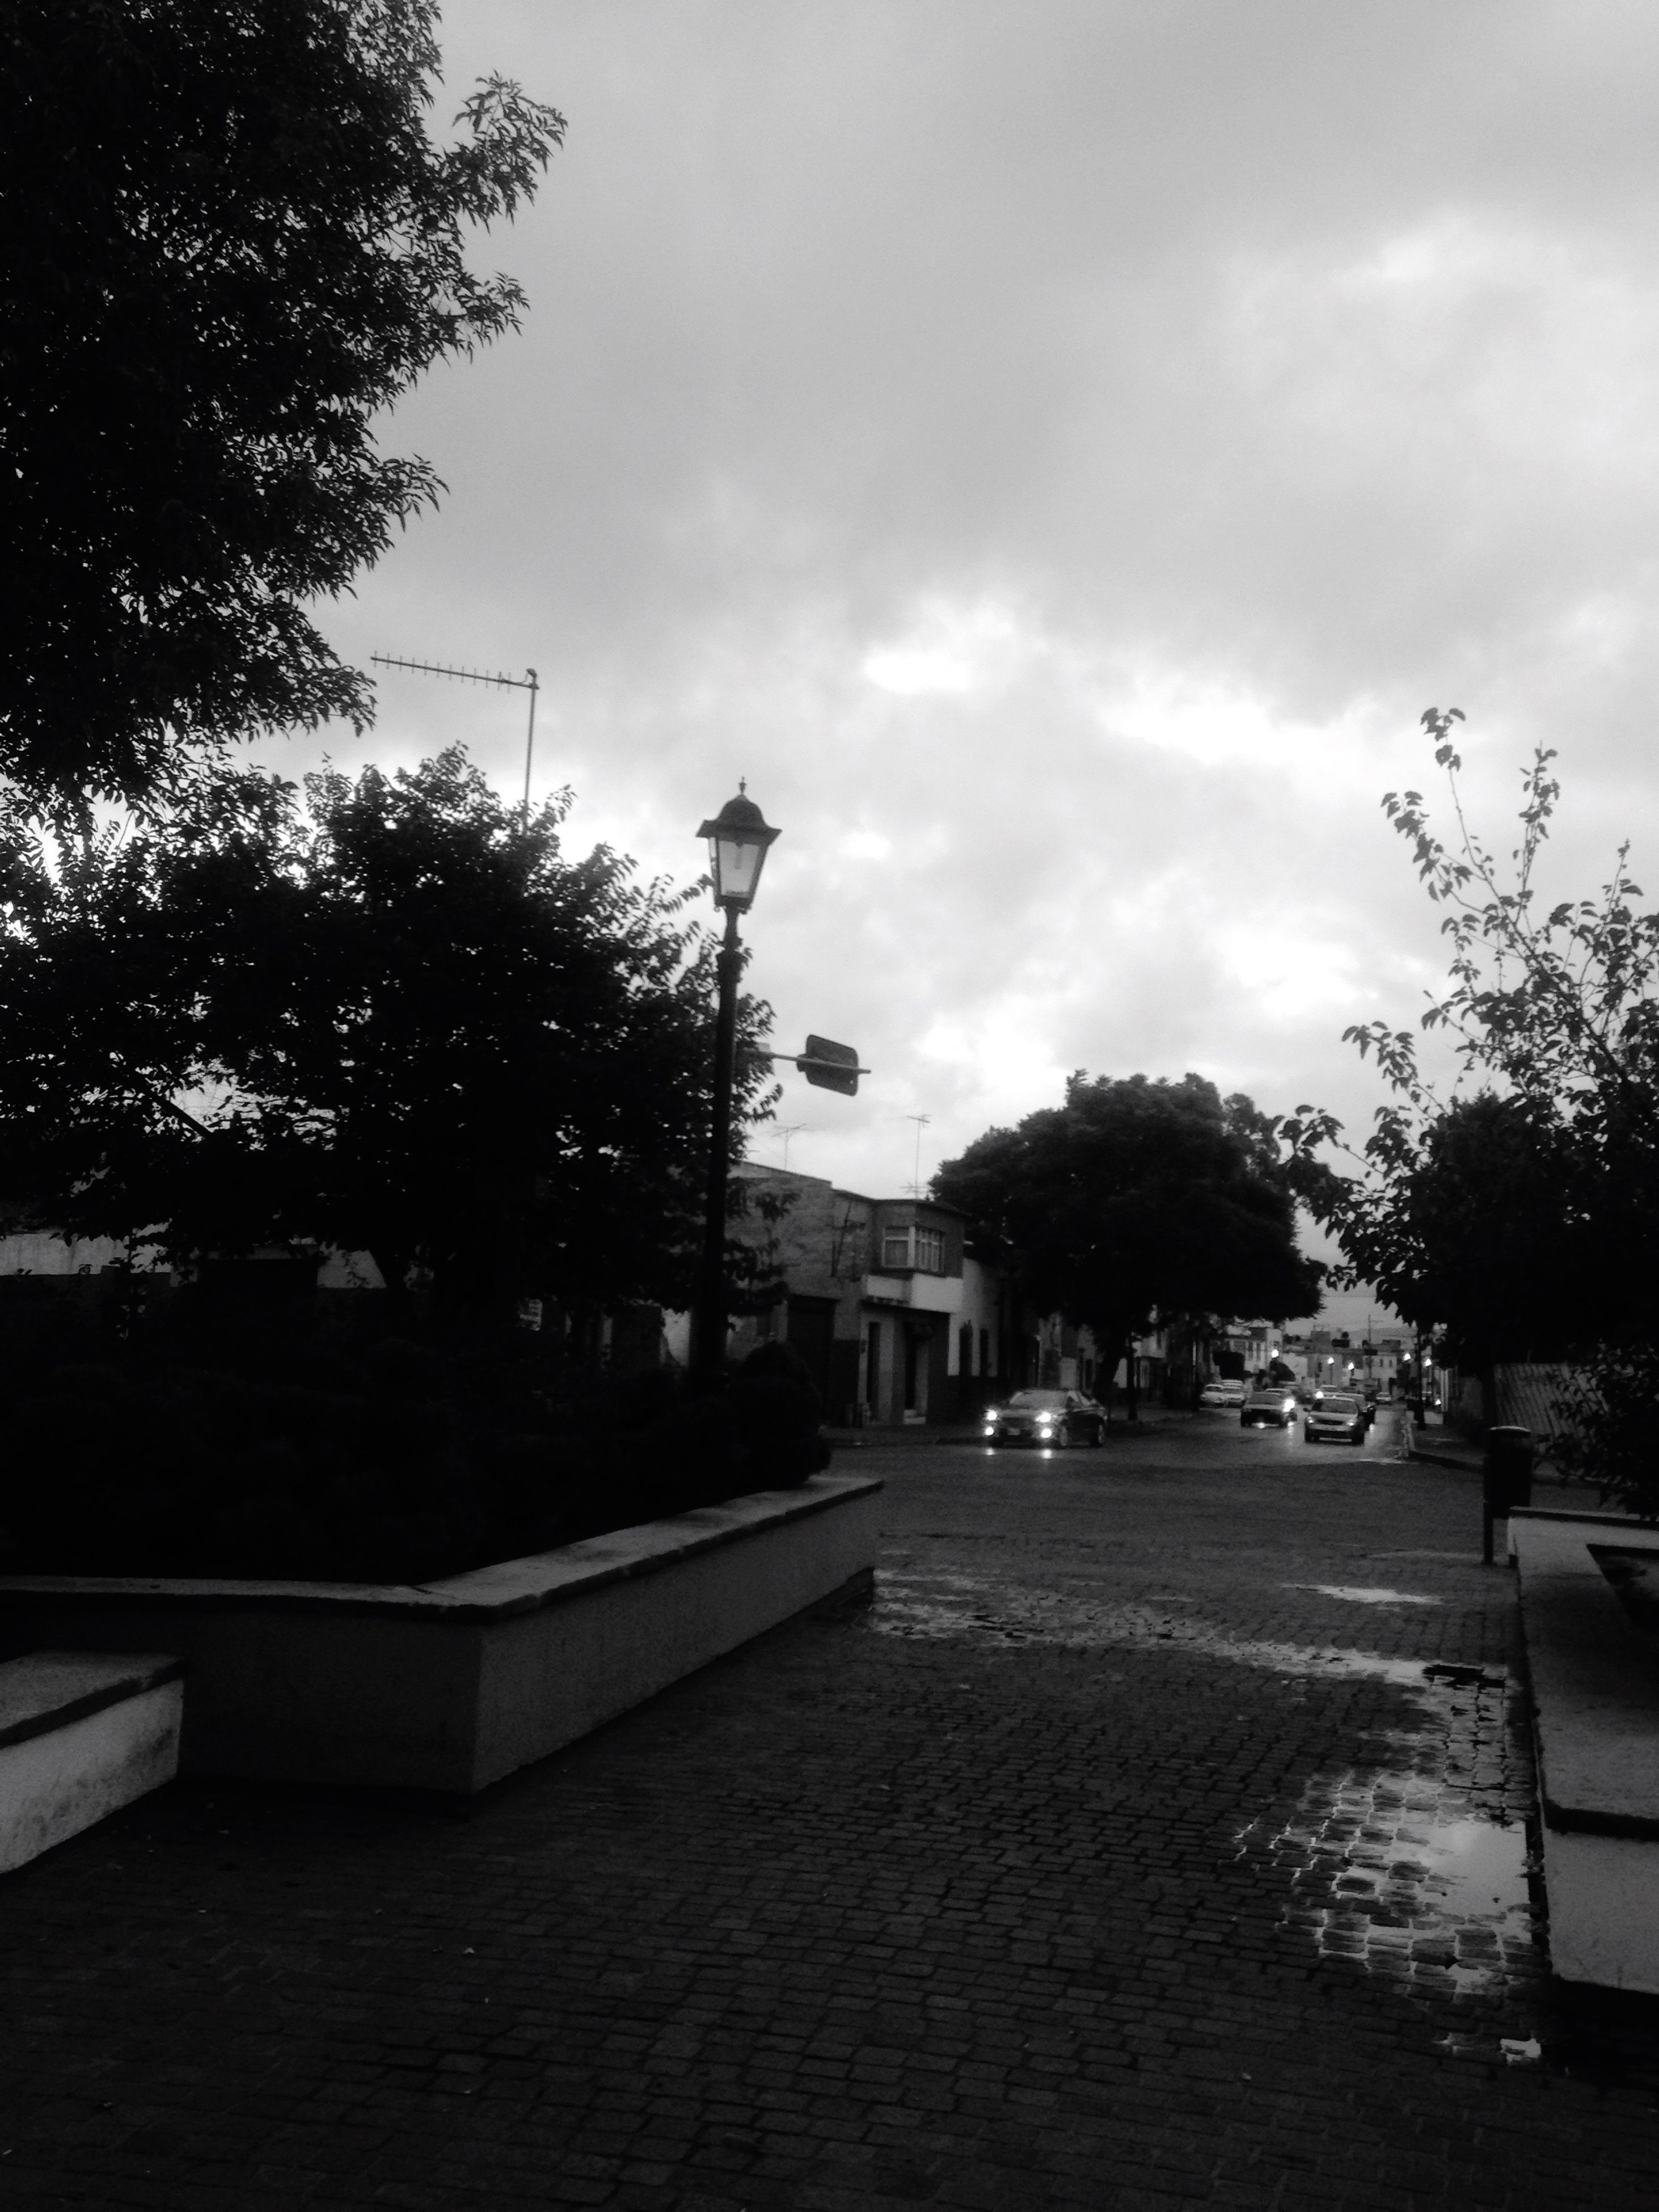 tree, sky, street light, park - man made space, cloud - sky, building exterior, day, cloud, footpath, the way forward, outdoors, pedestrian walkway, diminishing perspective, cloudy, park, town, tranquil scene, tranquility, no people